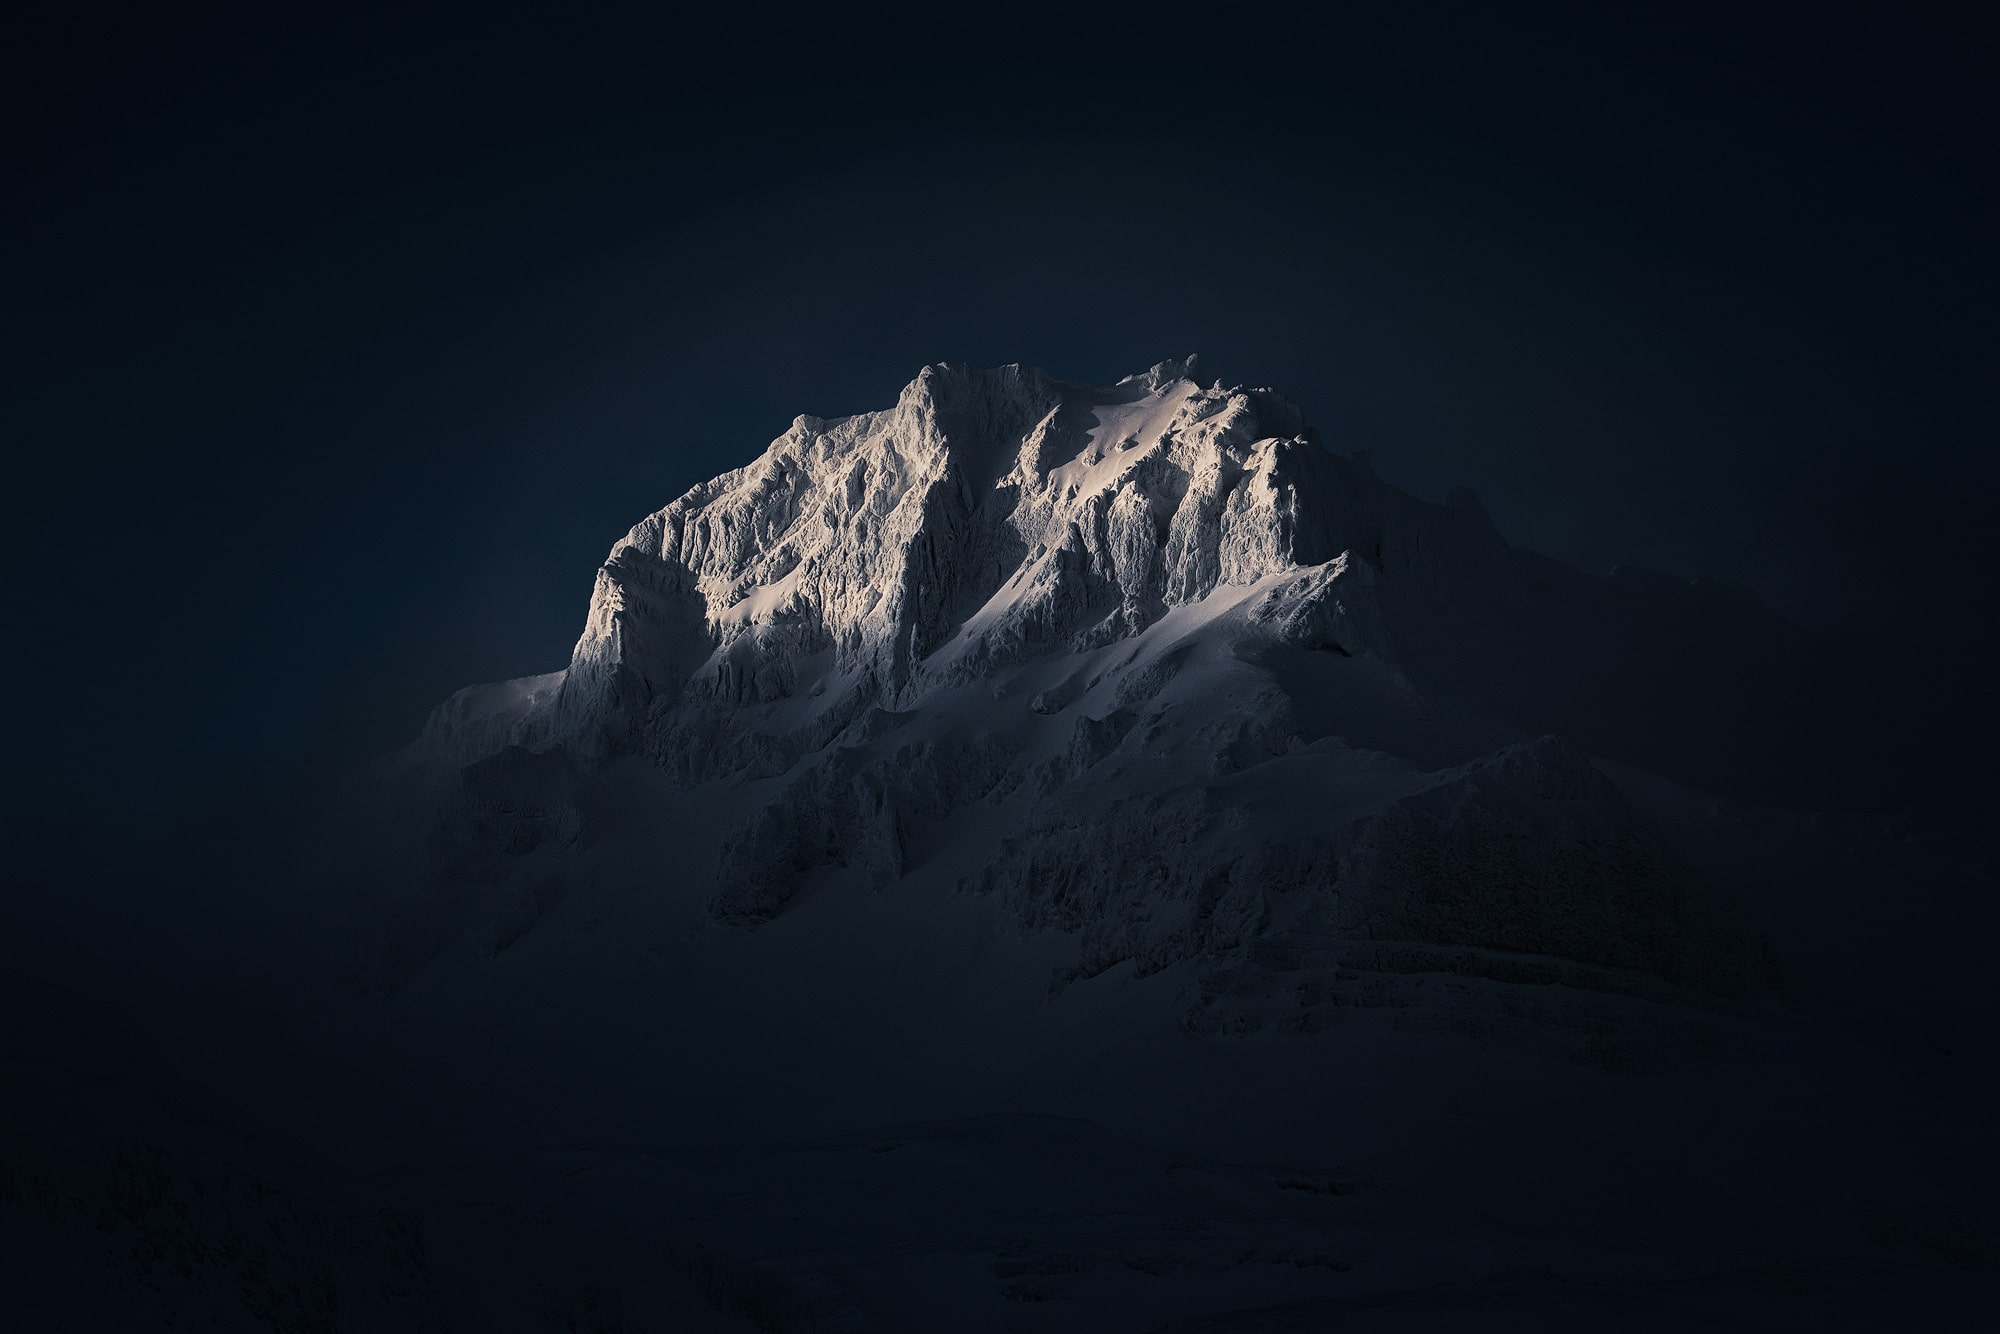 Albert-Dros-Sony-Alpha-7RIII-first-light-hitting-a-snowy-mountainside